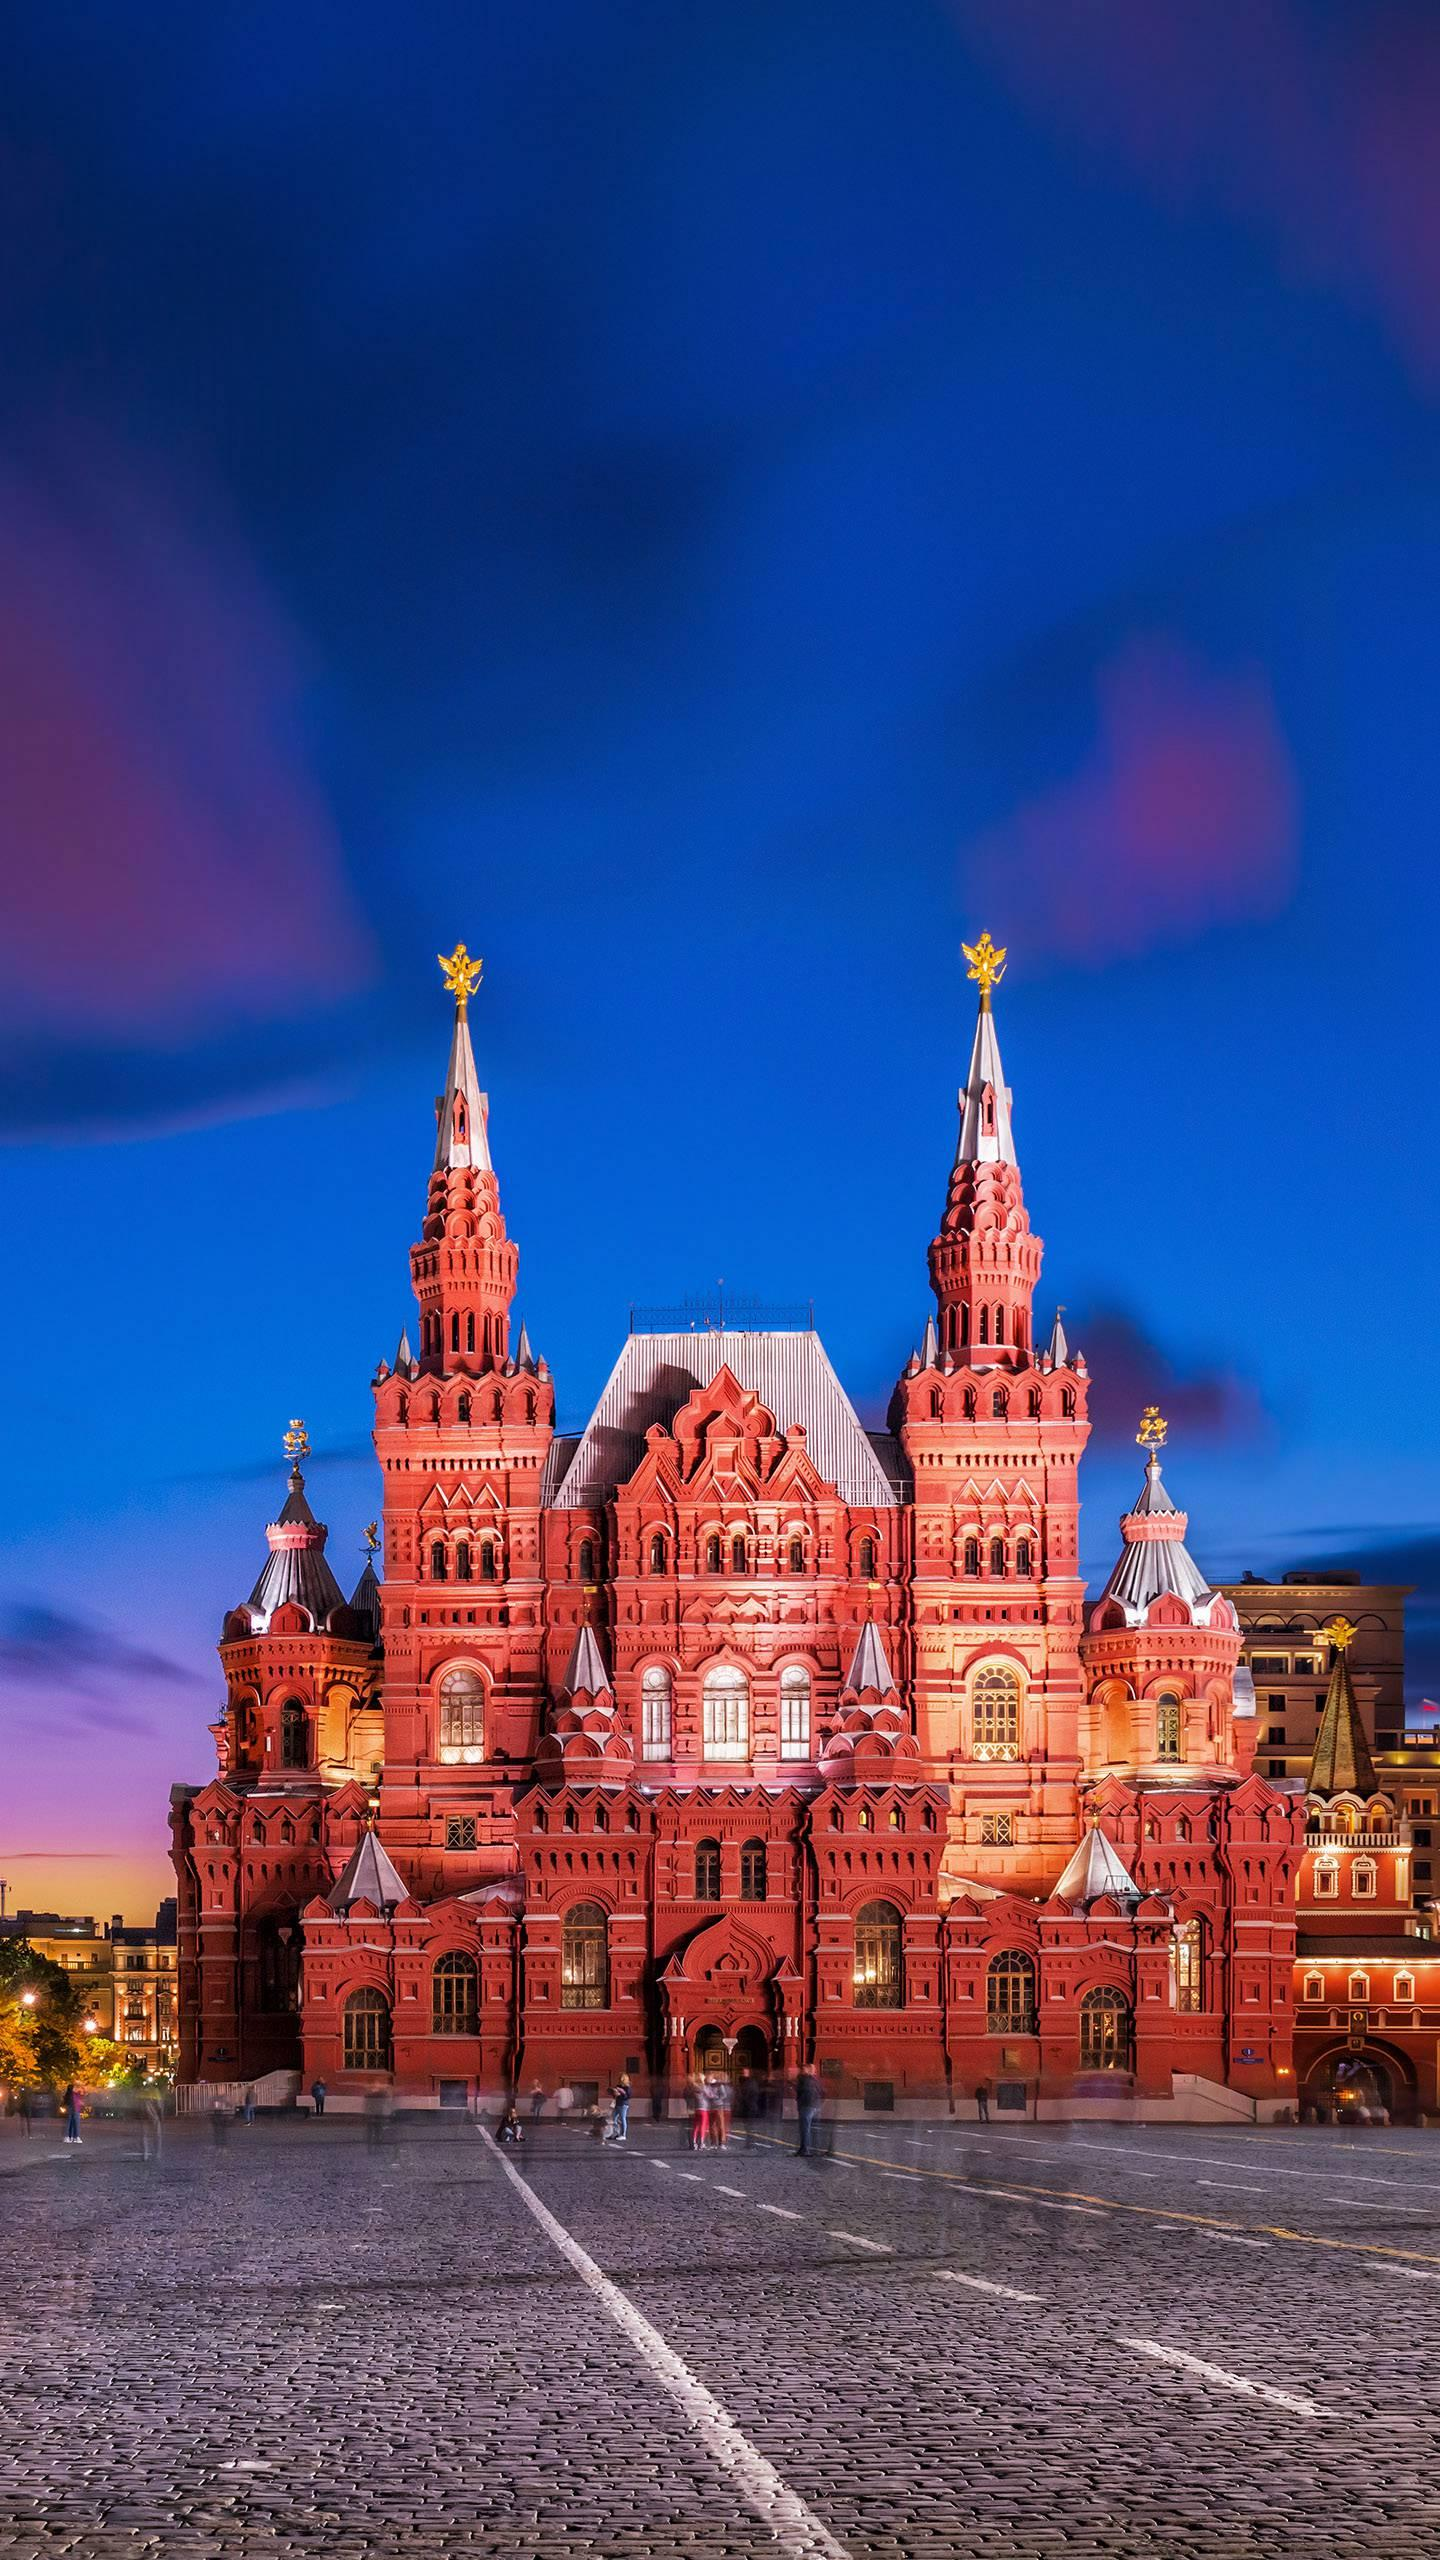 Russian National History Museum. The elegant red brick building stands tall with silver-white spires, highlighting the Russian architectural style in a calm and restrained temperament.